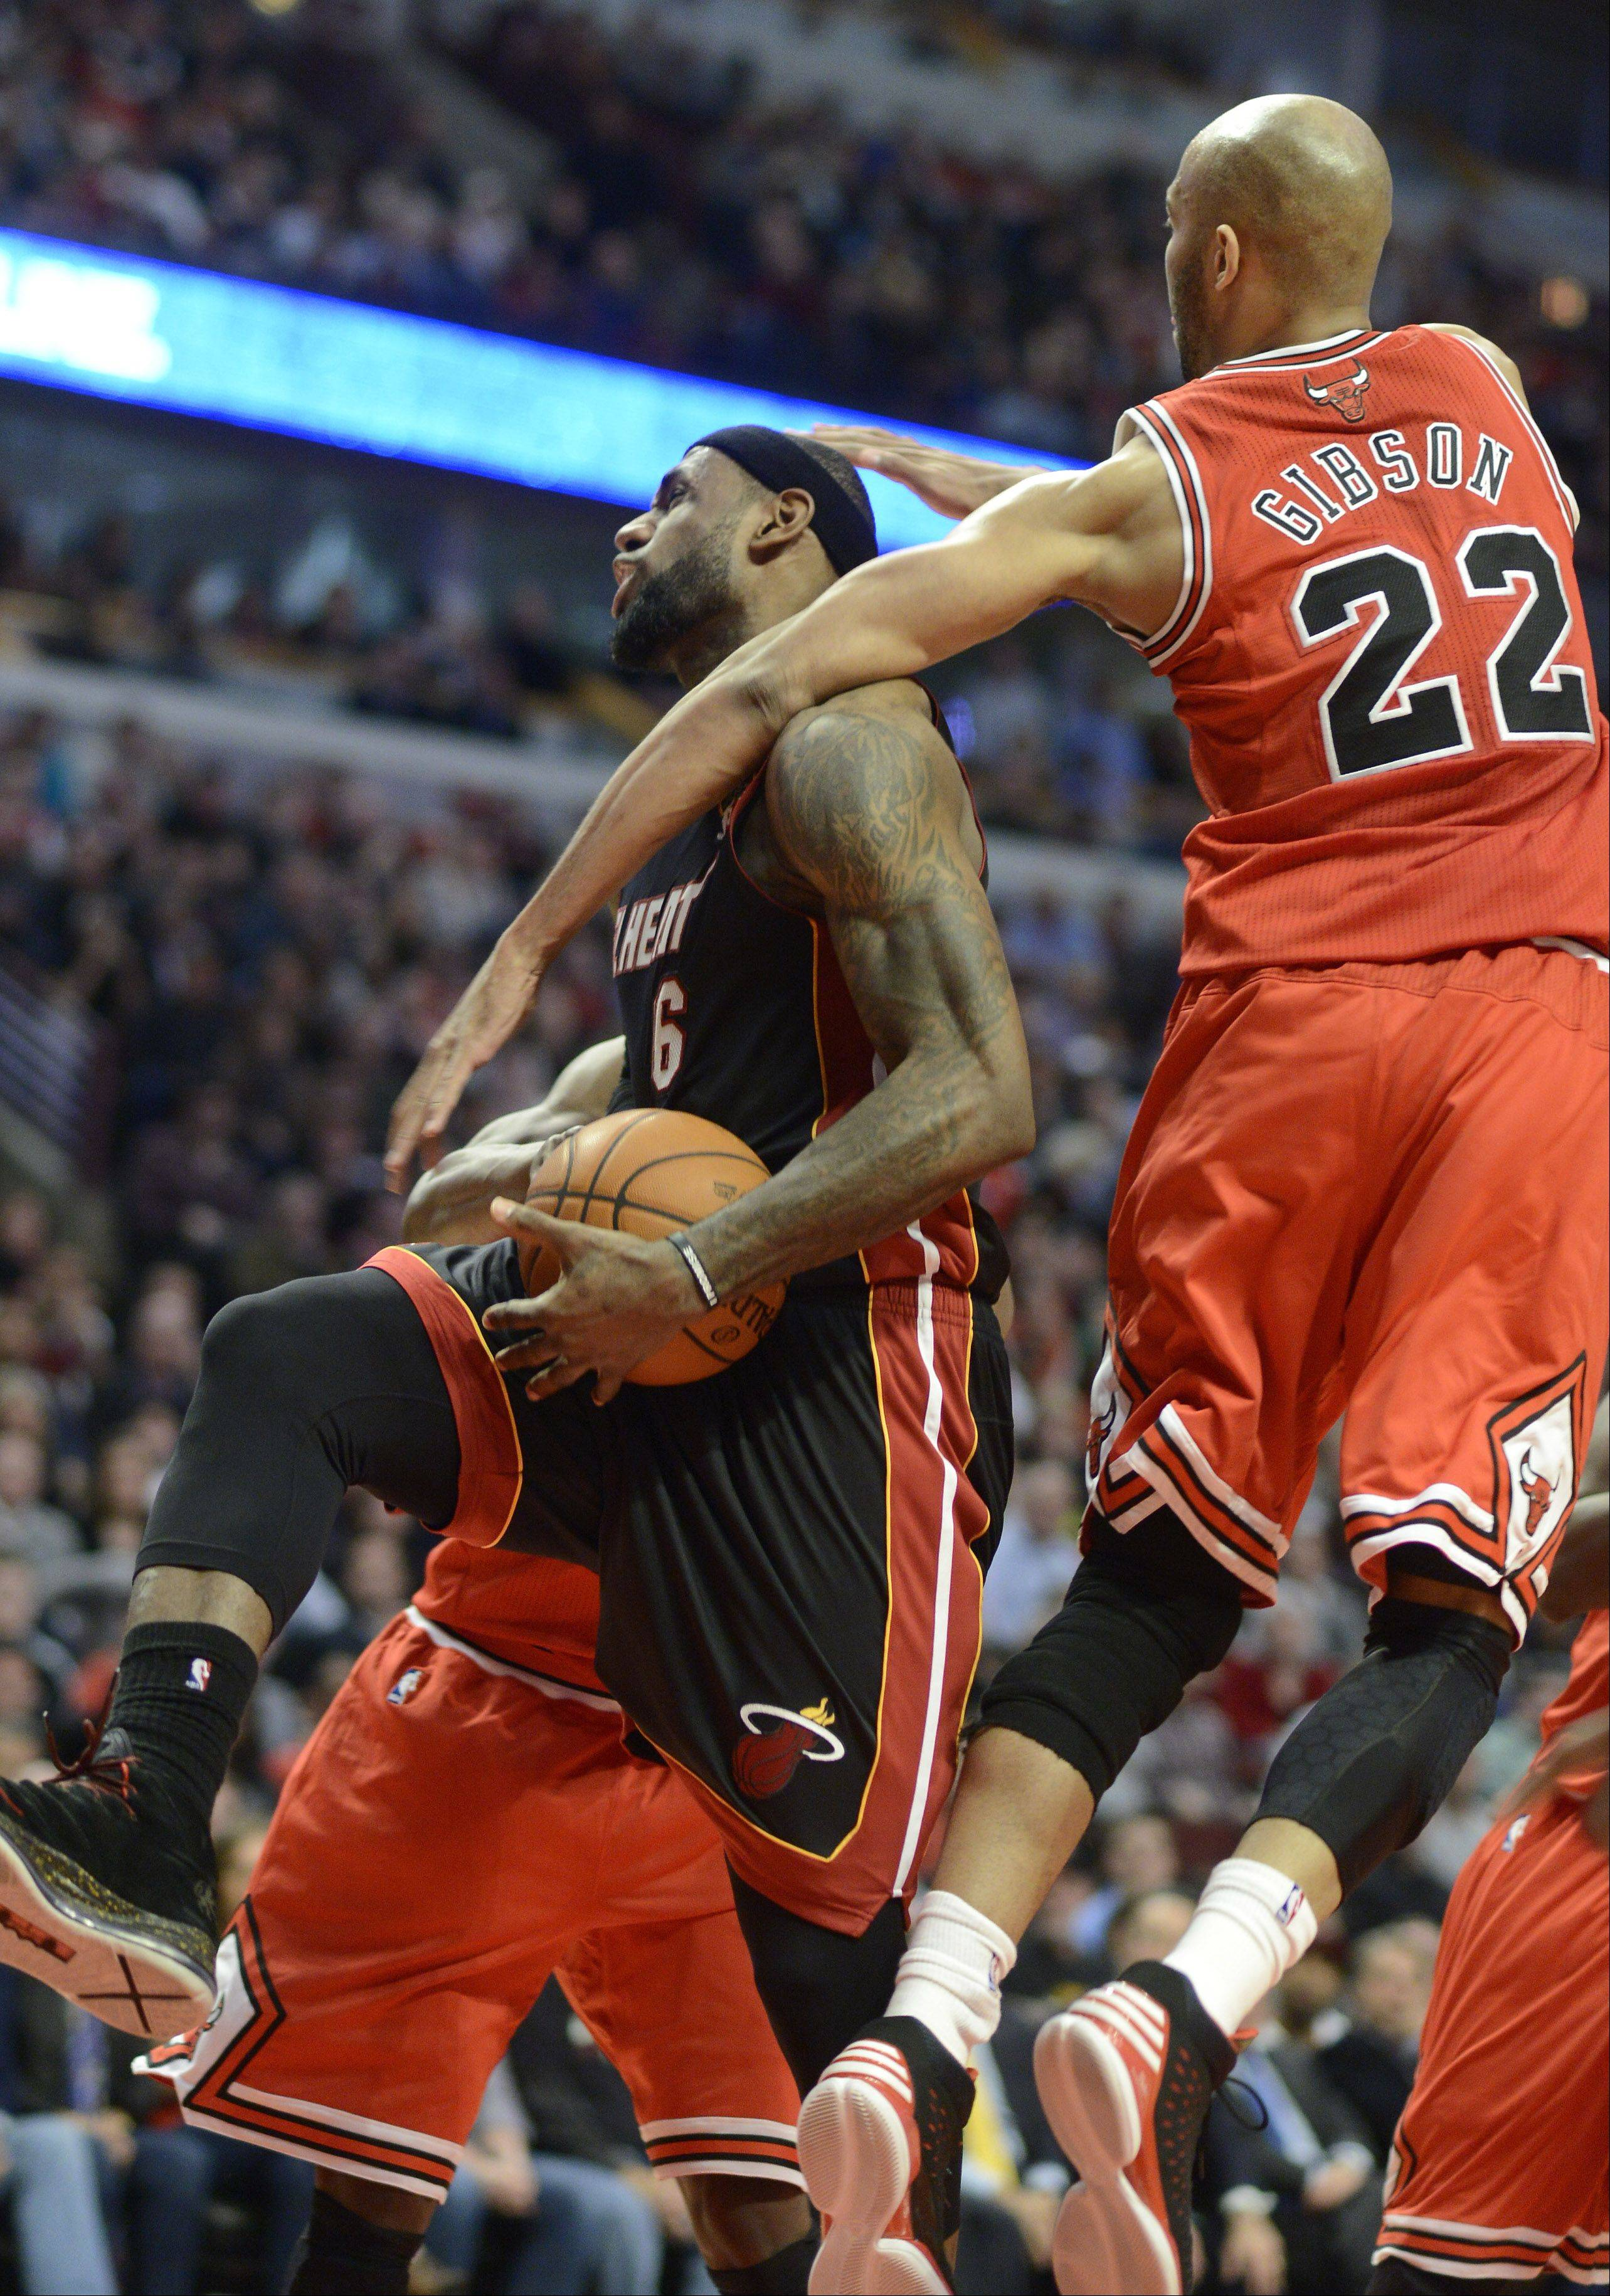 The Heat�s LeBron James gets fouled by Taj Gibson of the Bulls. It was reviewed and determined not to be a flagrant foul.